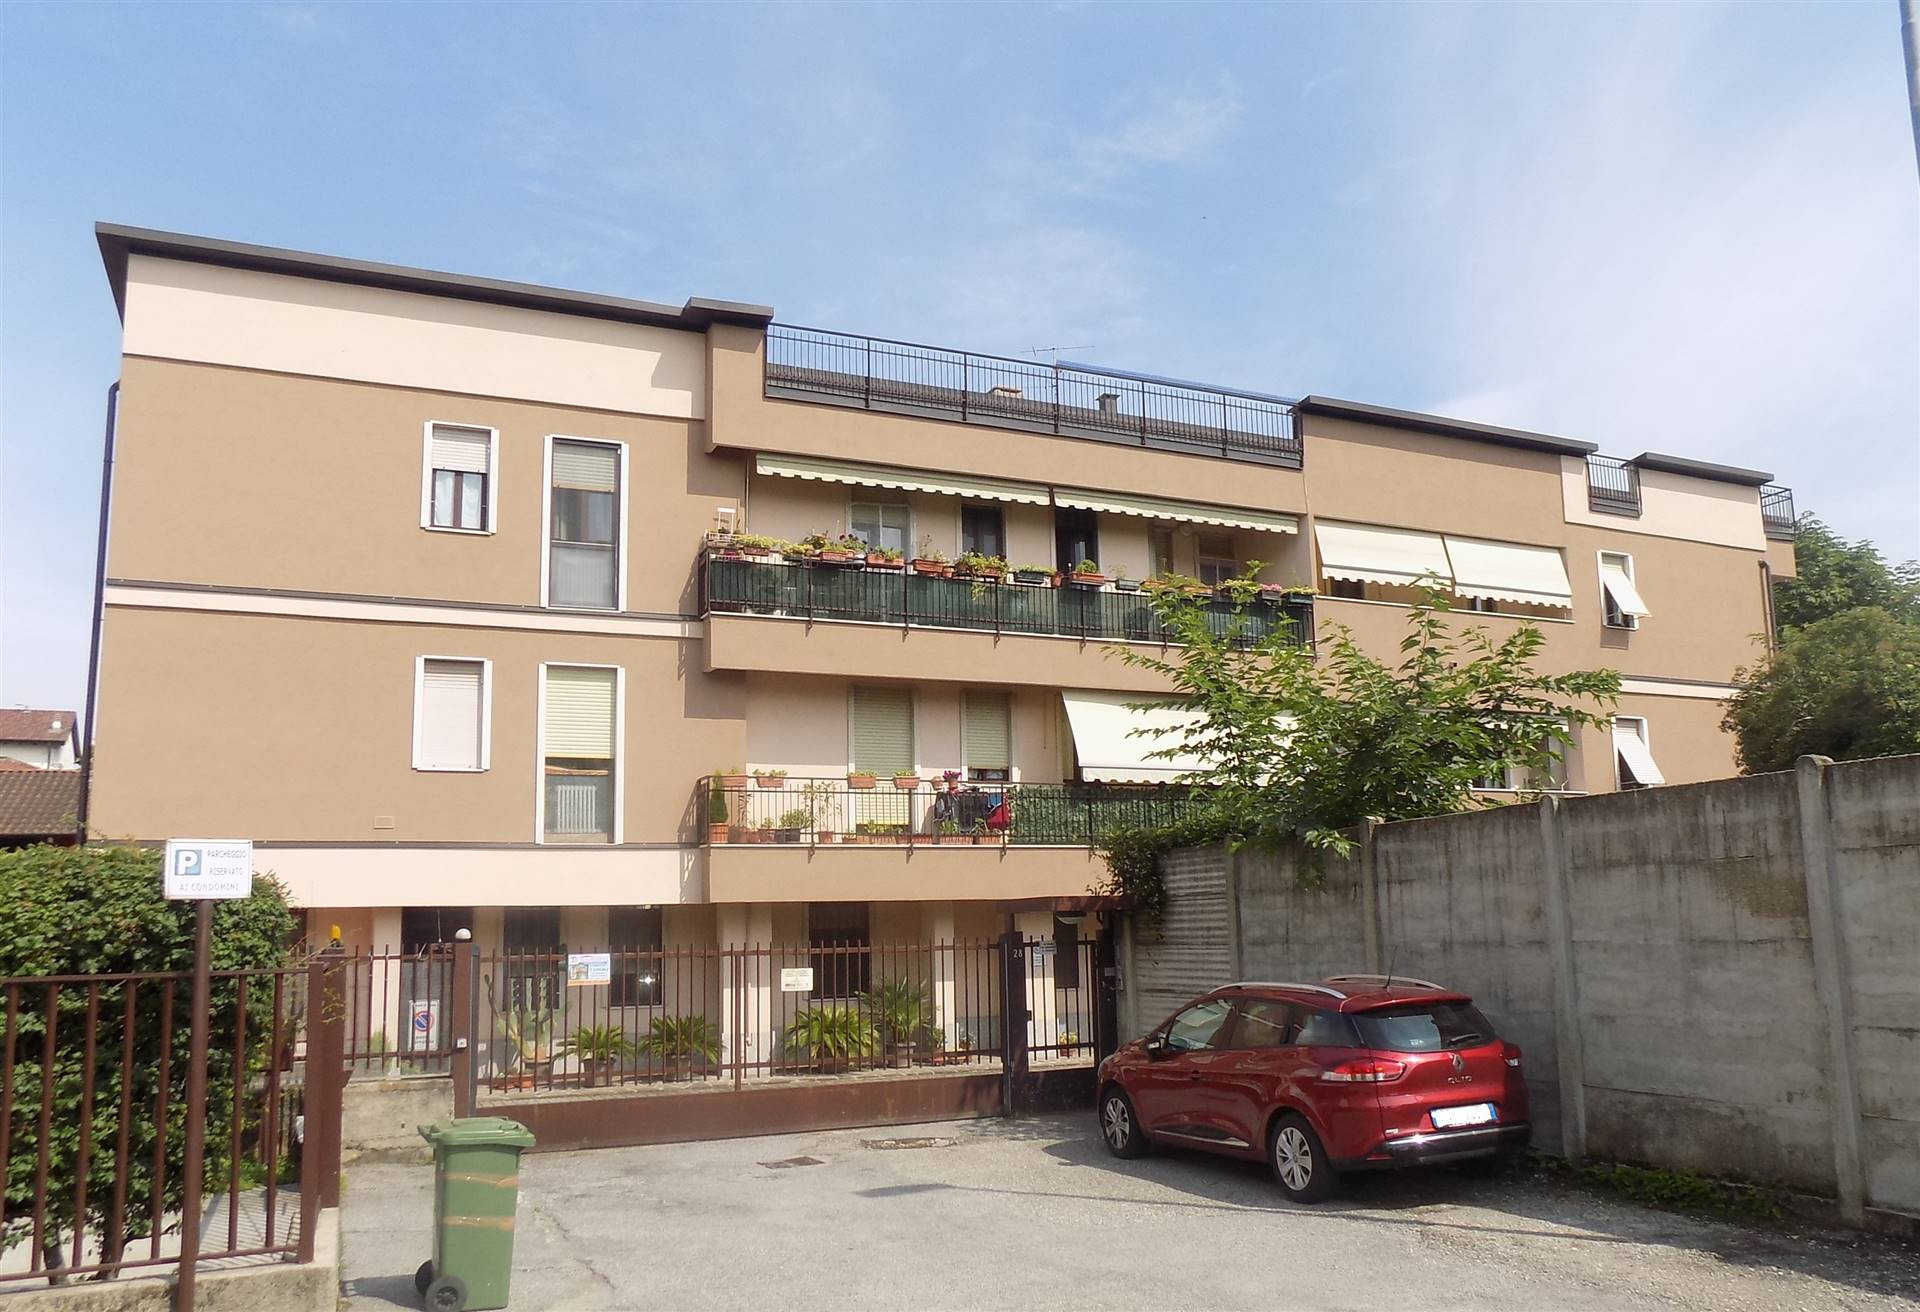 SANTALBINO, MONZA, Apartment for sale of 95 Sq. mt., Good condition, Heating Individual heating system, Energetic class: D, Epi: 89,4 kwh/m2 year,